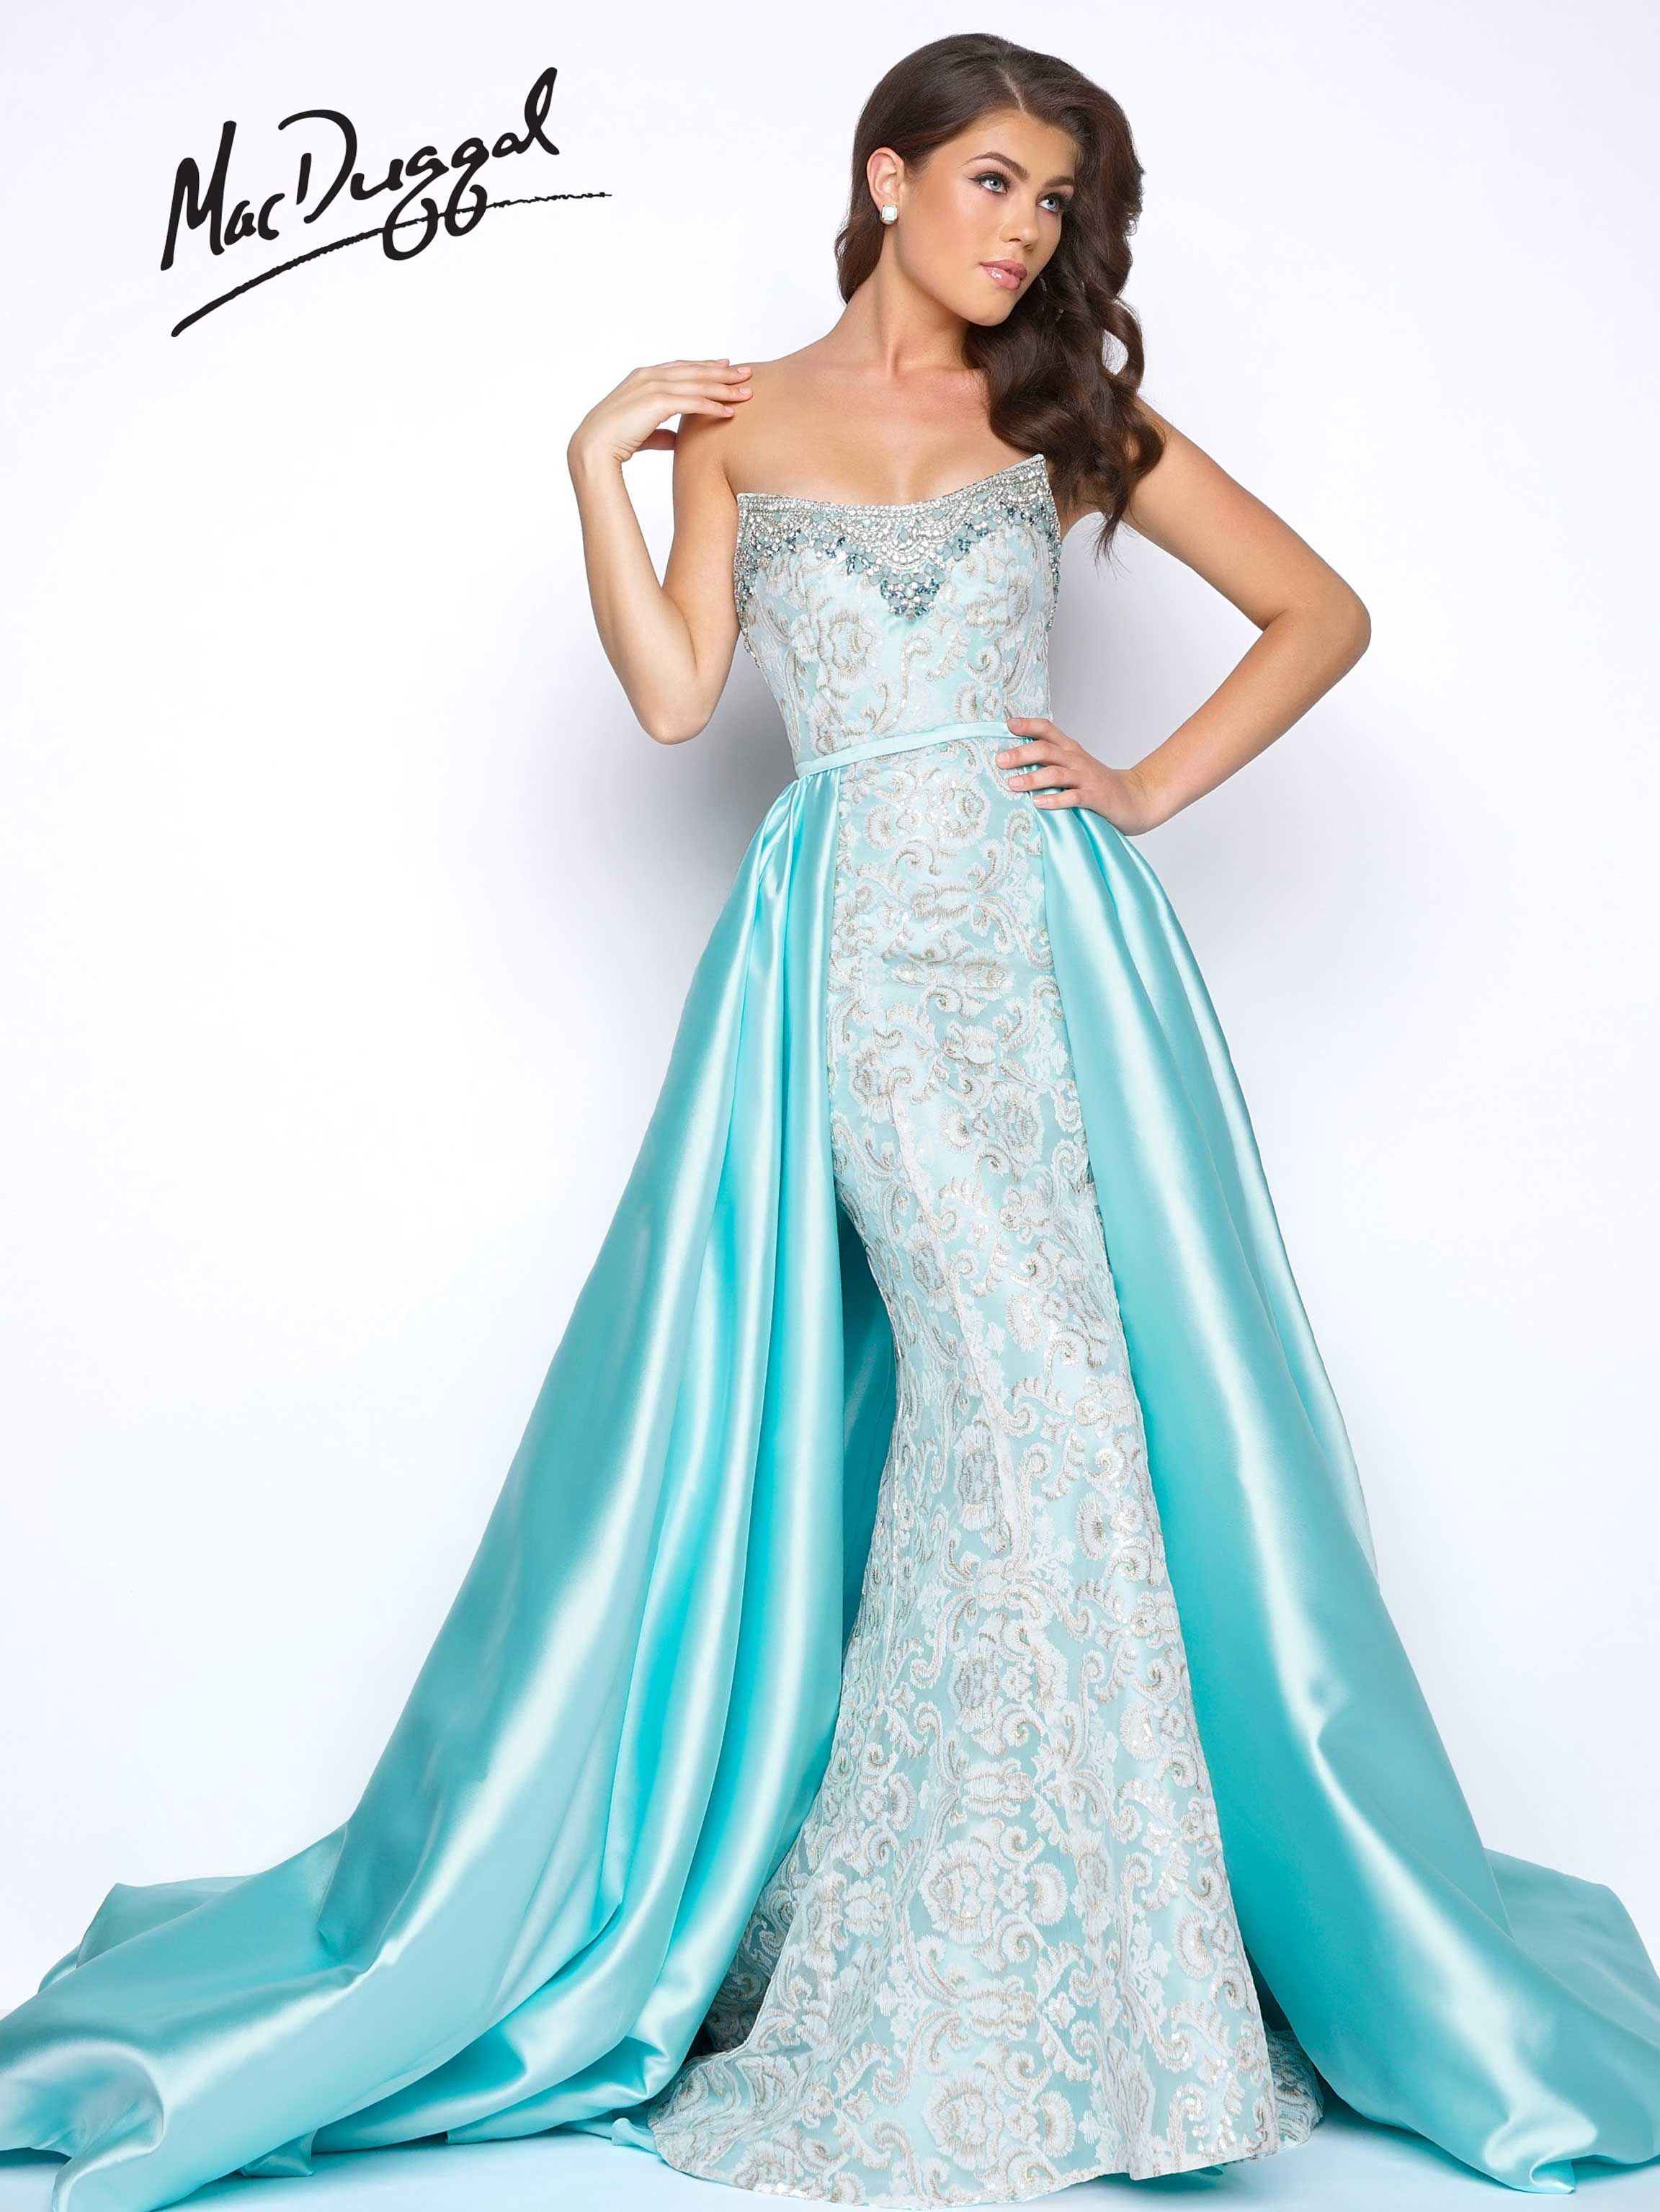 1c5f10dfc2b5c Strapless, embroidered mermaid prom dress with jewel trimmed neckline and  satin overskirt with exaggerated sweep train. This royalty worthy prom dress  comes ...